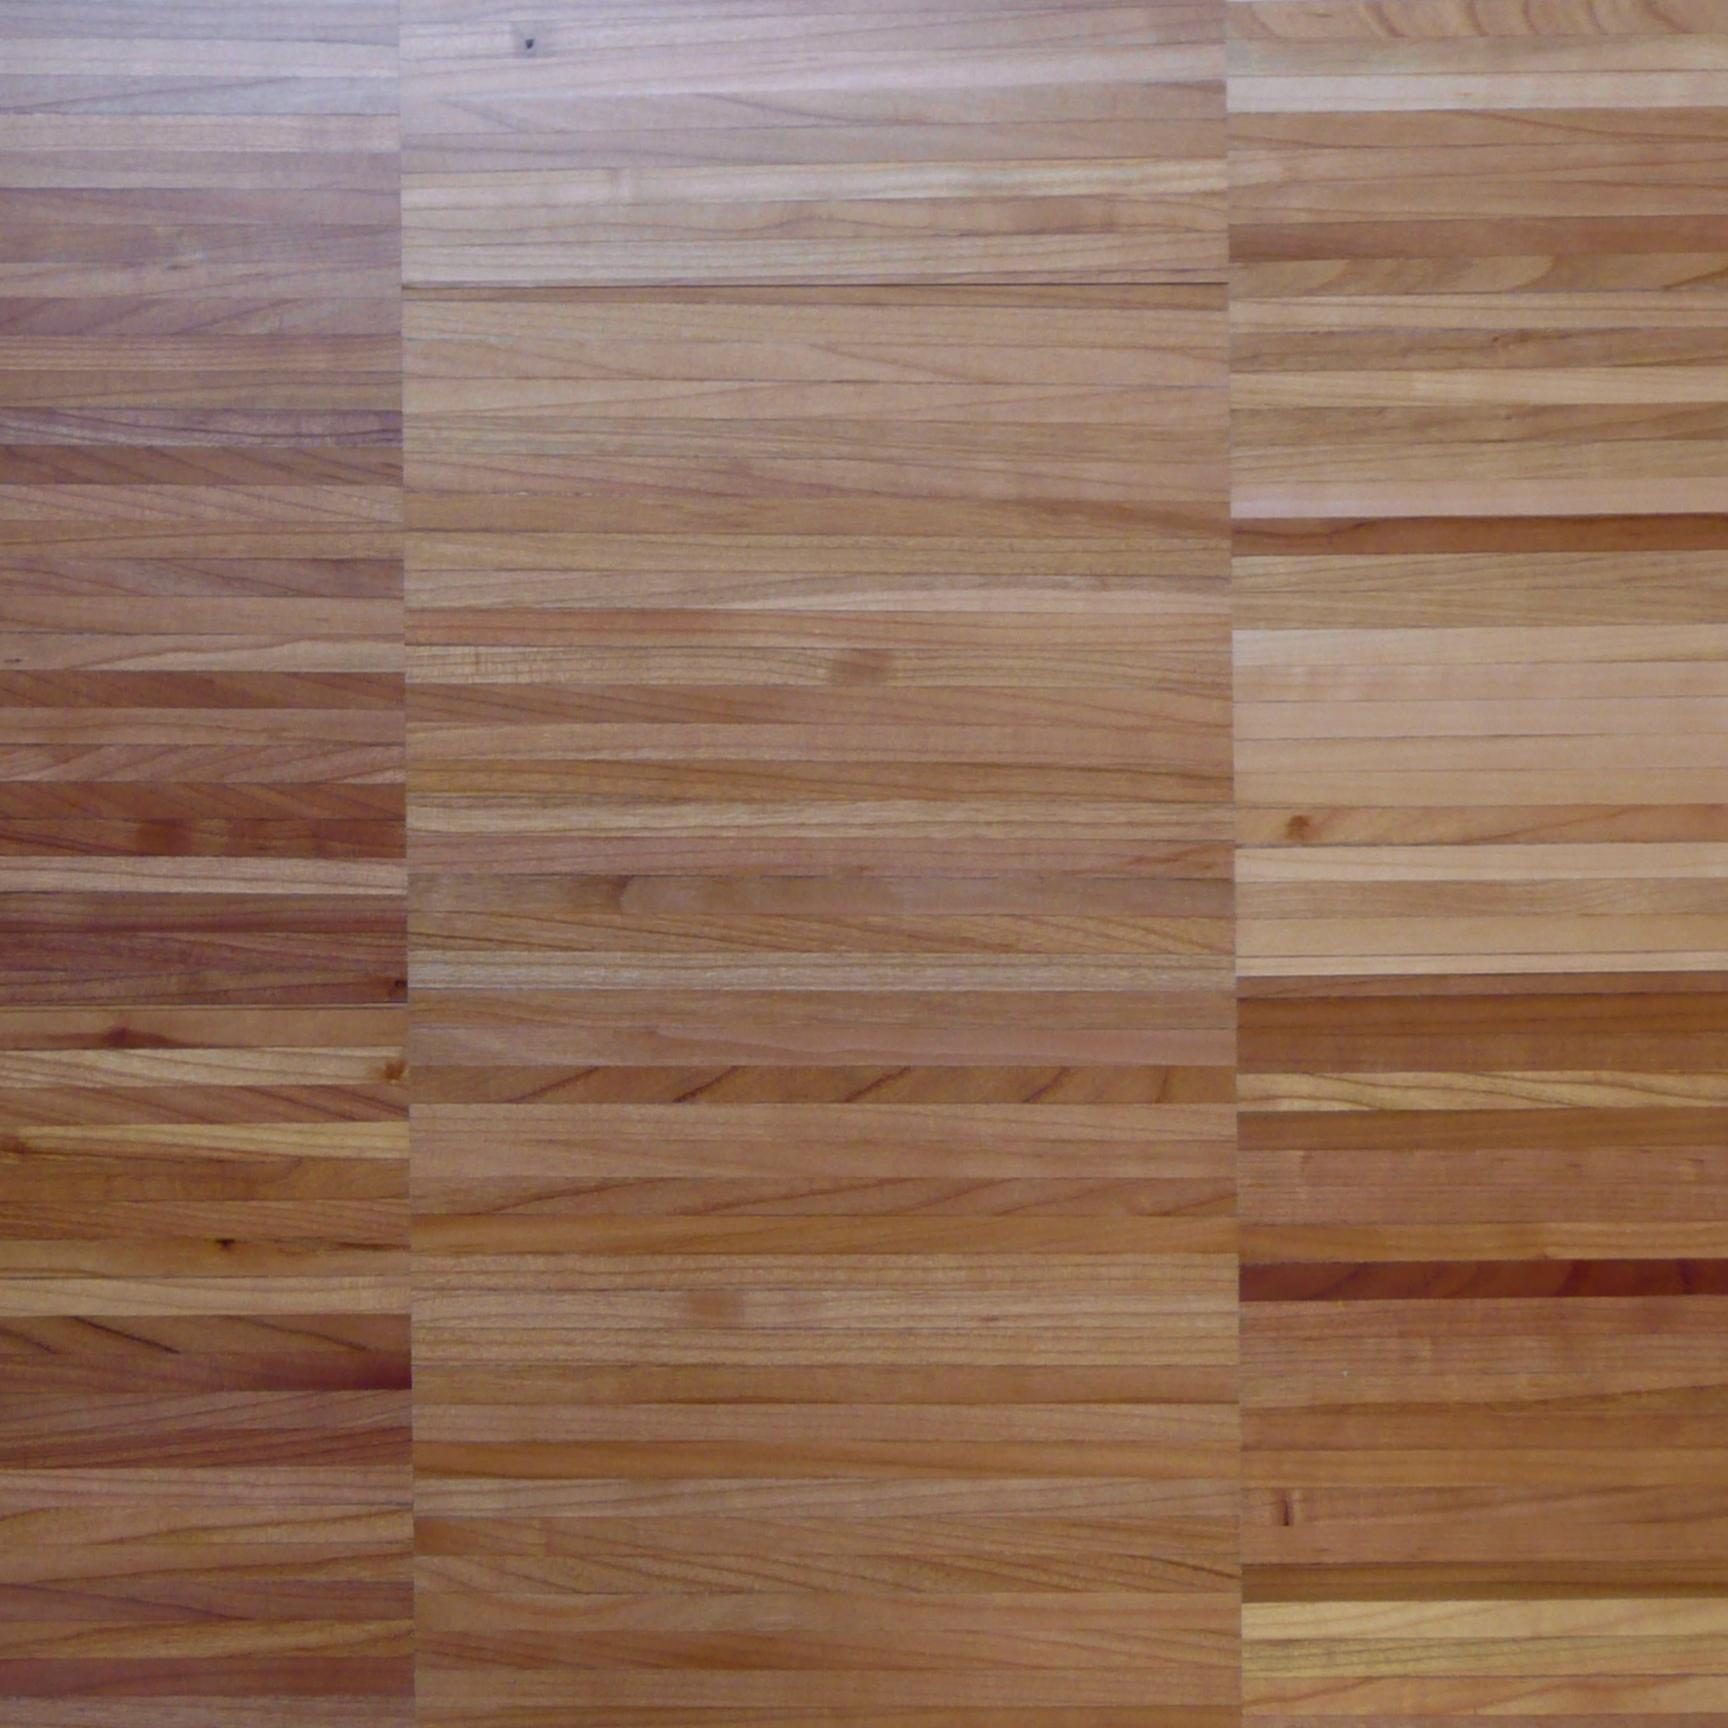 Carrelage imitation parquet chausson renovation immeuble for Coller carrelage sur parquet